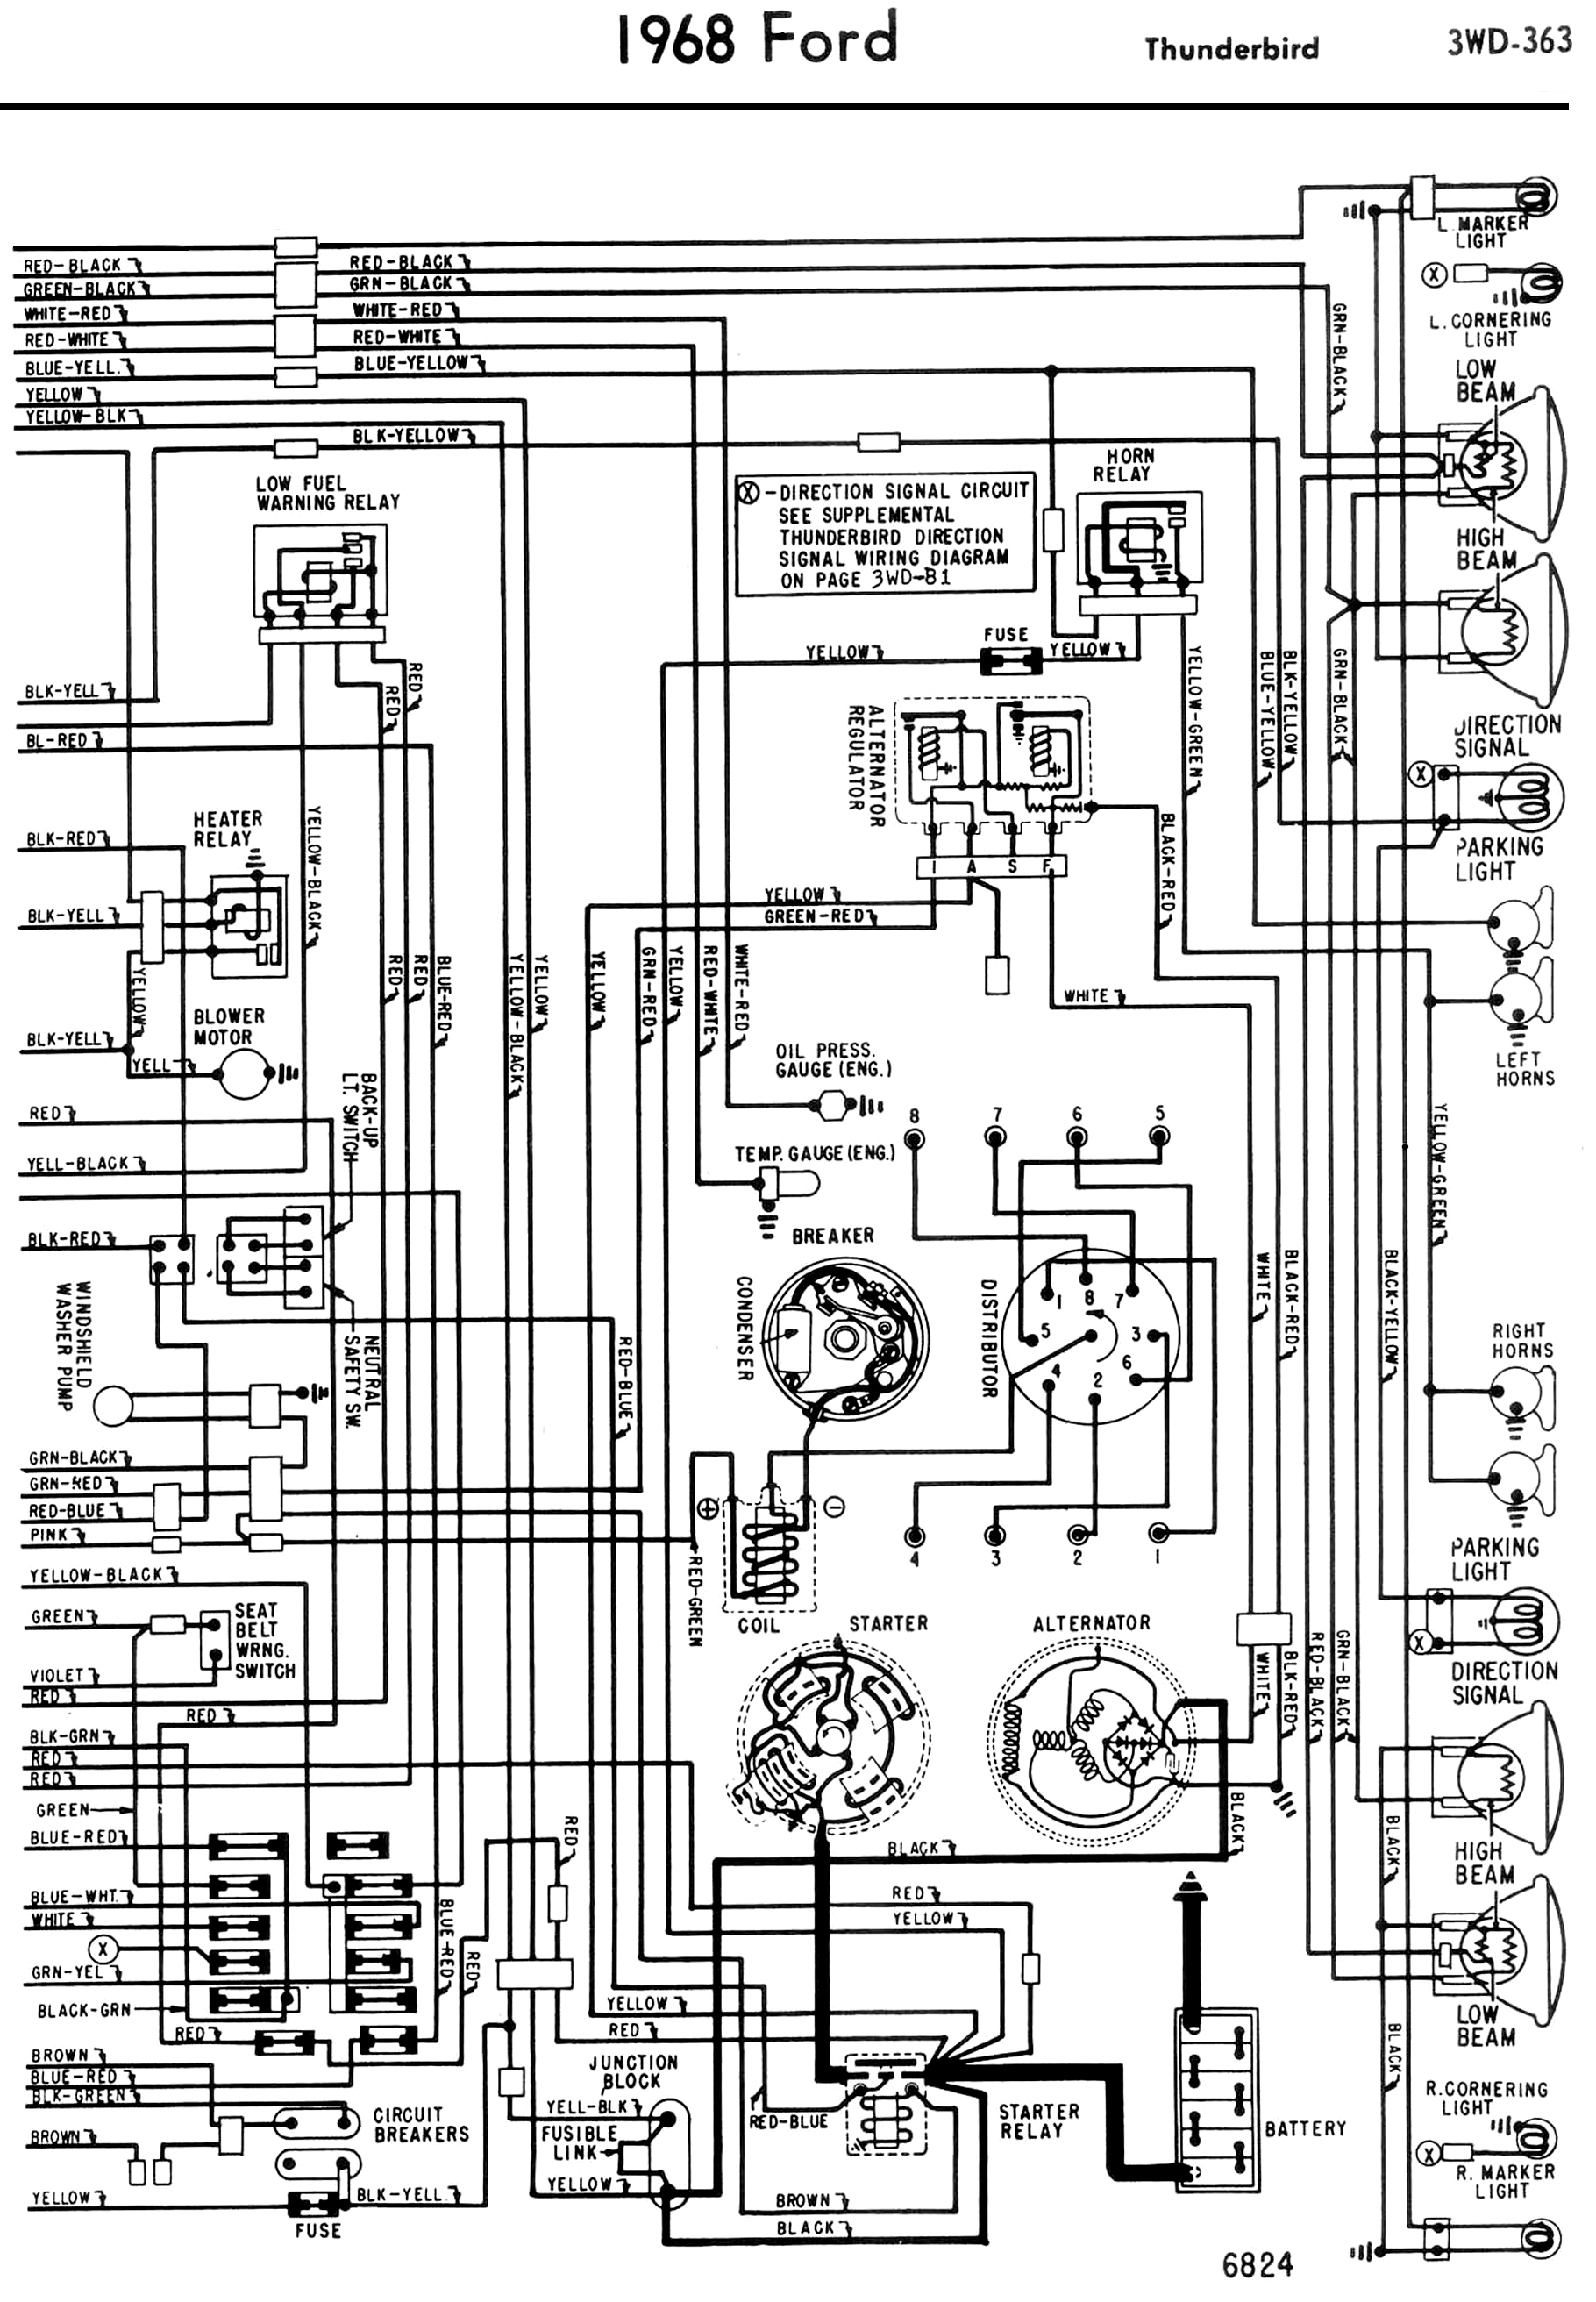 1968 Ford Mustang Ignition Wiring Diagram Library 1969 Buick Lesabre 1958 68 Electrical Schematics For 2004 F250 Diagrams